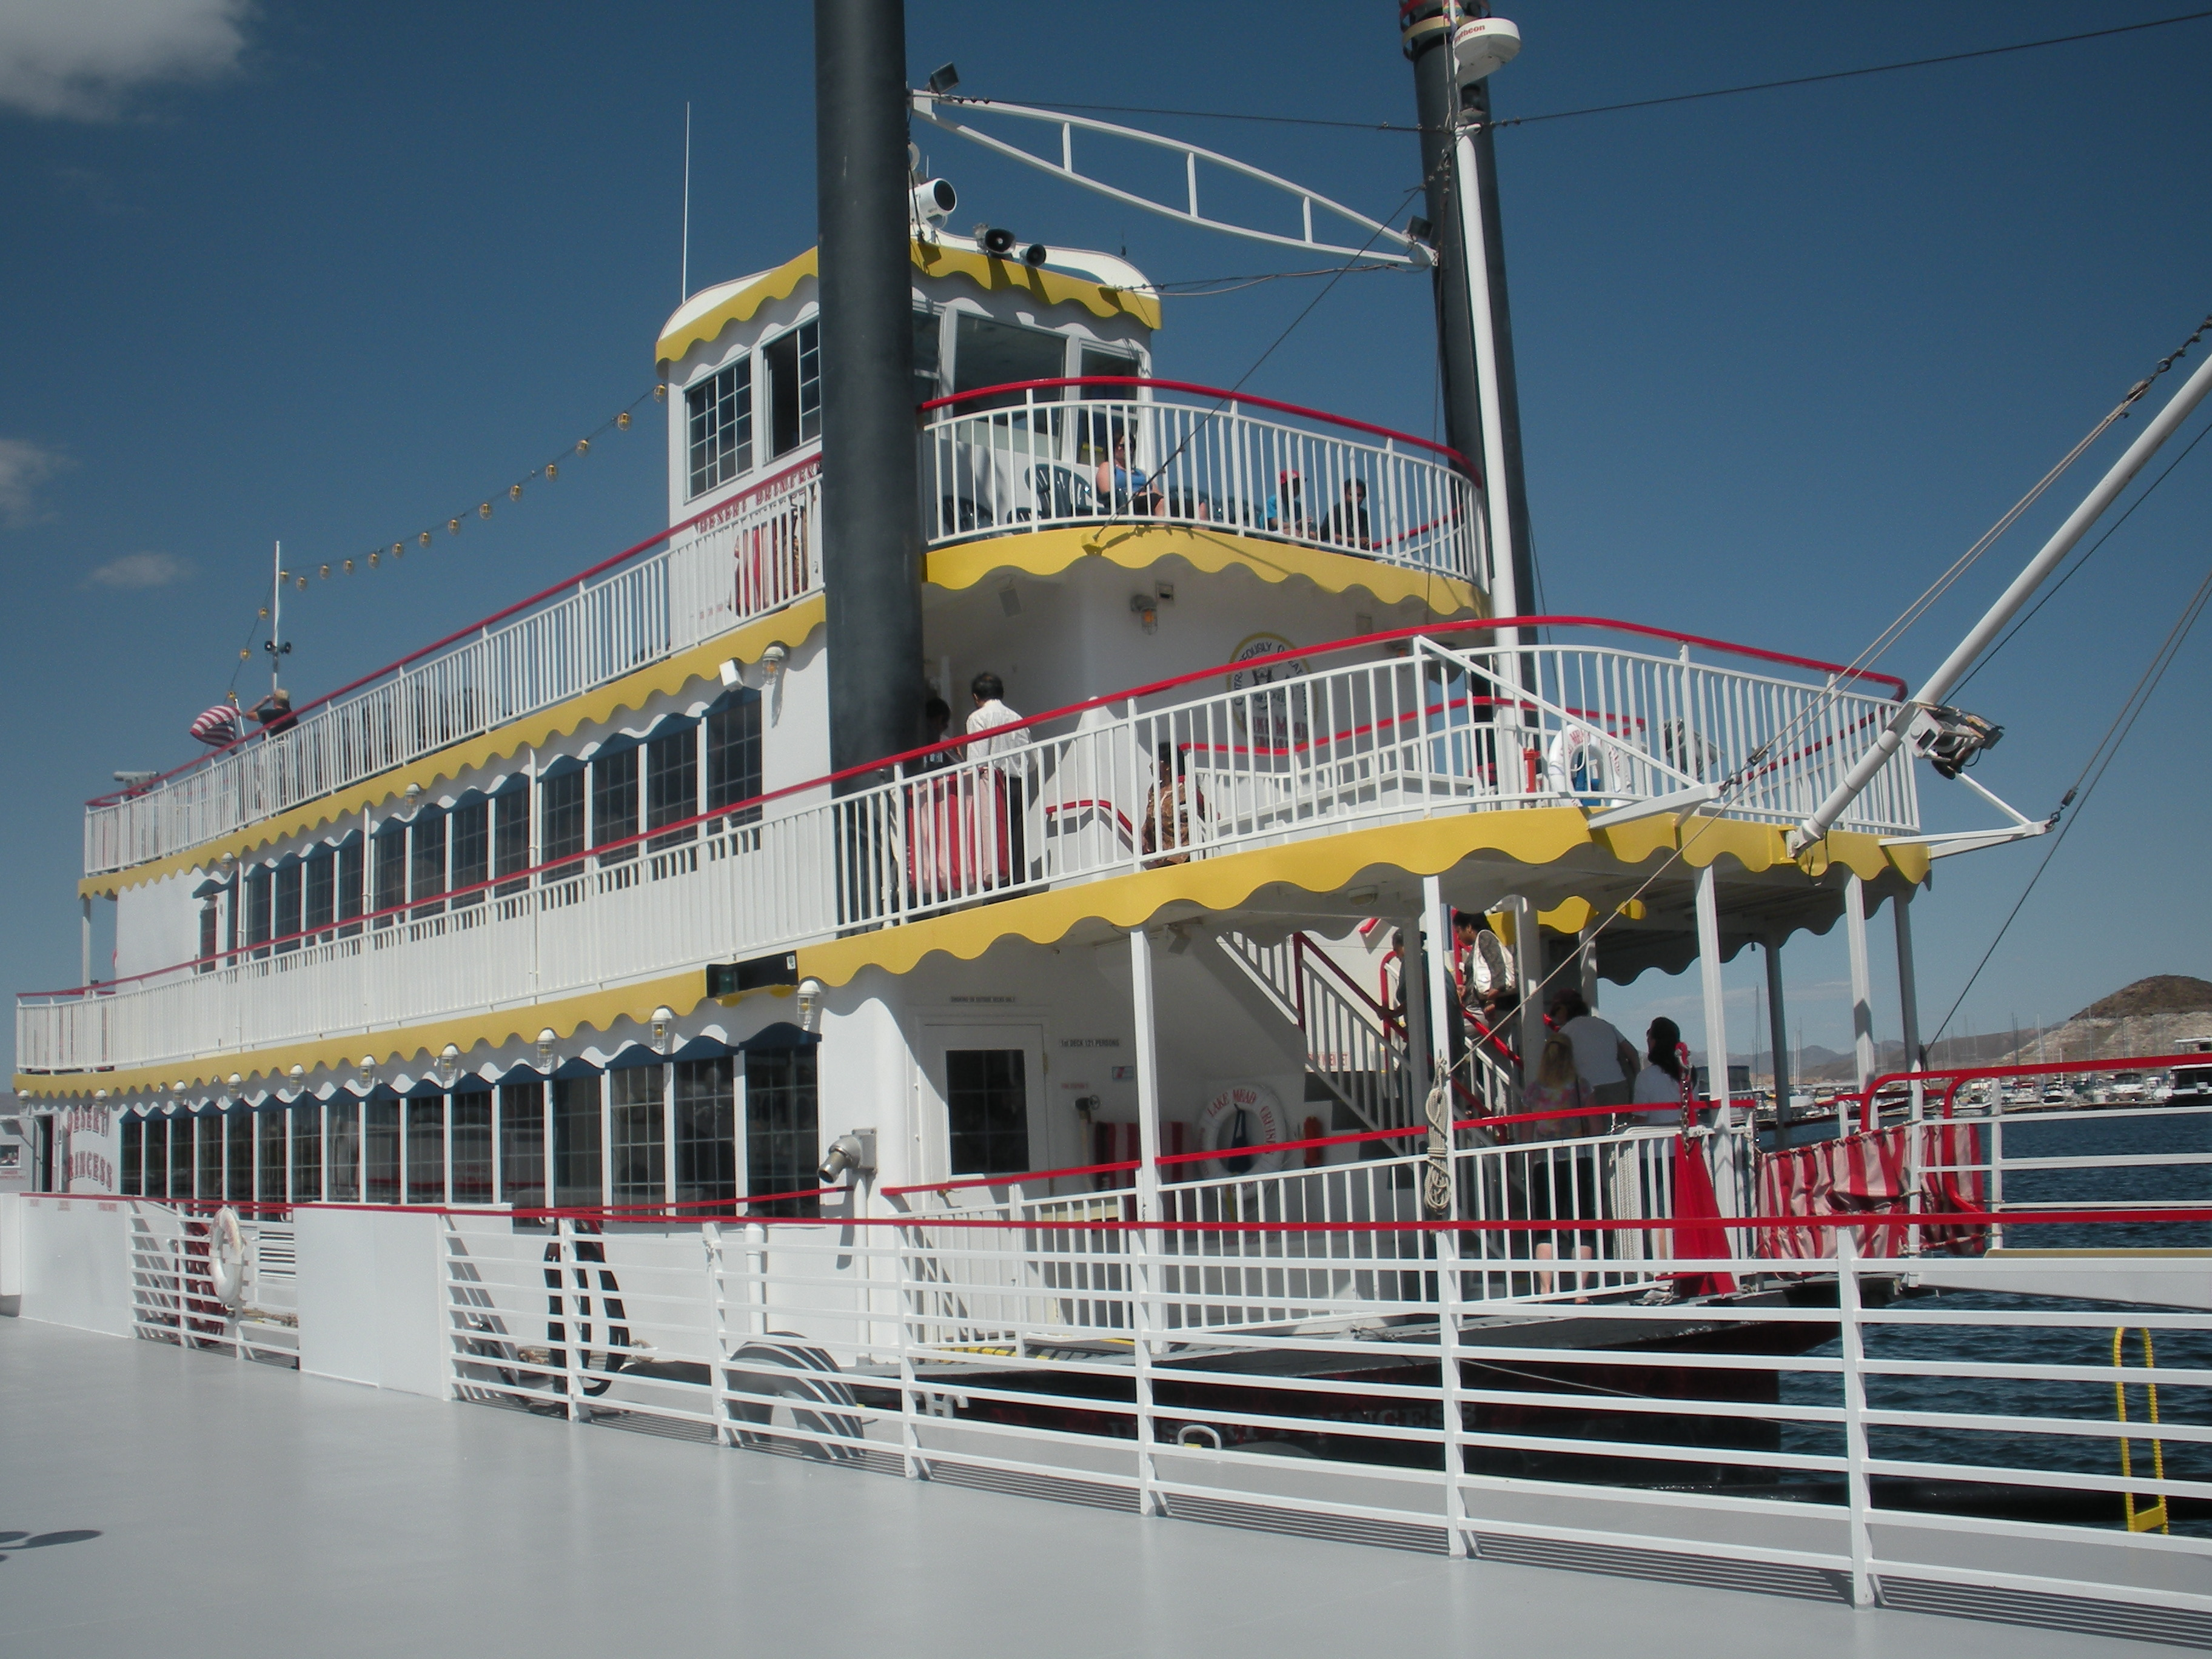 Lake mead cruise discount coupon